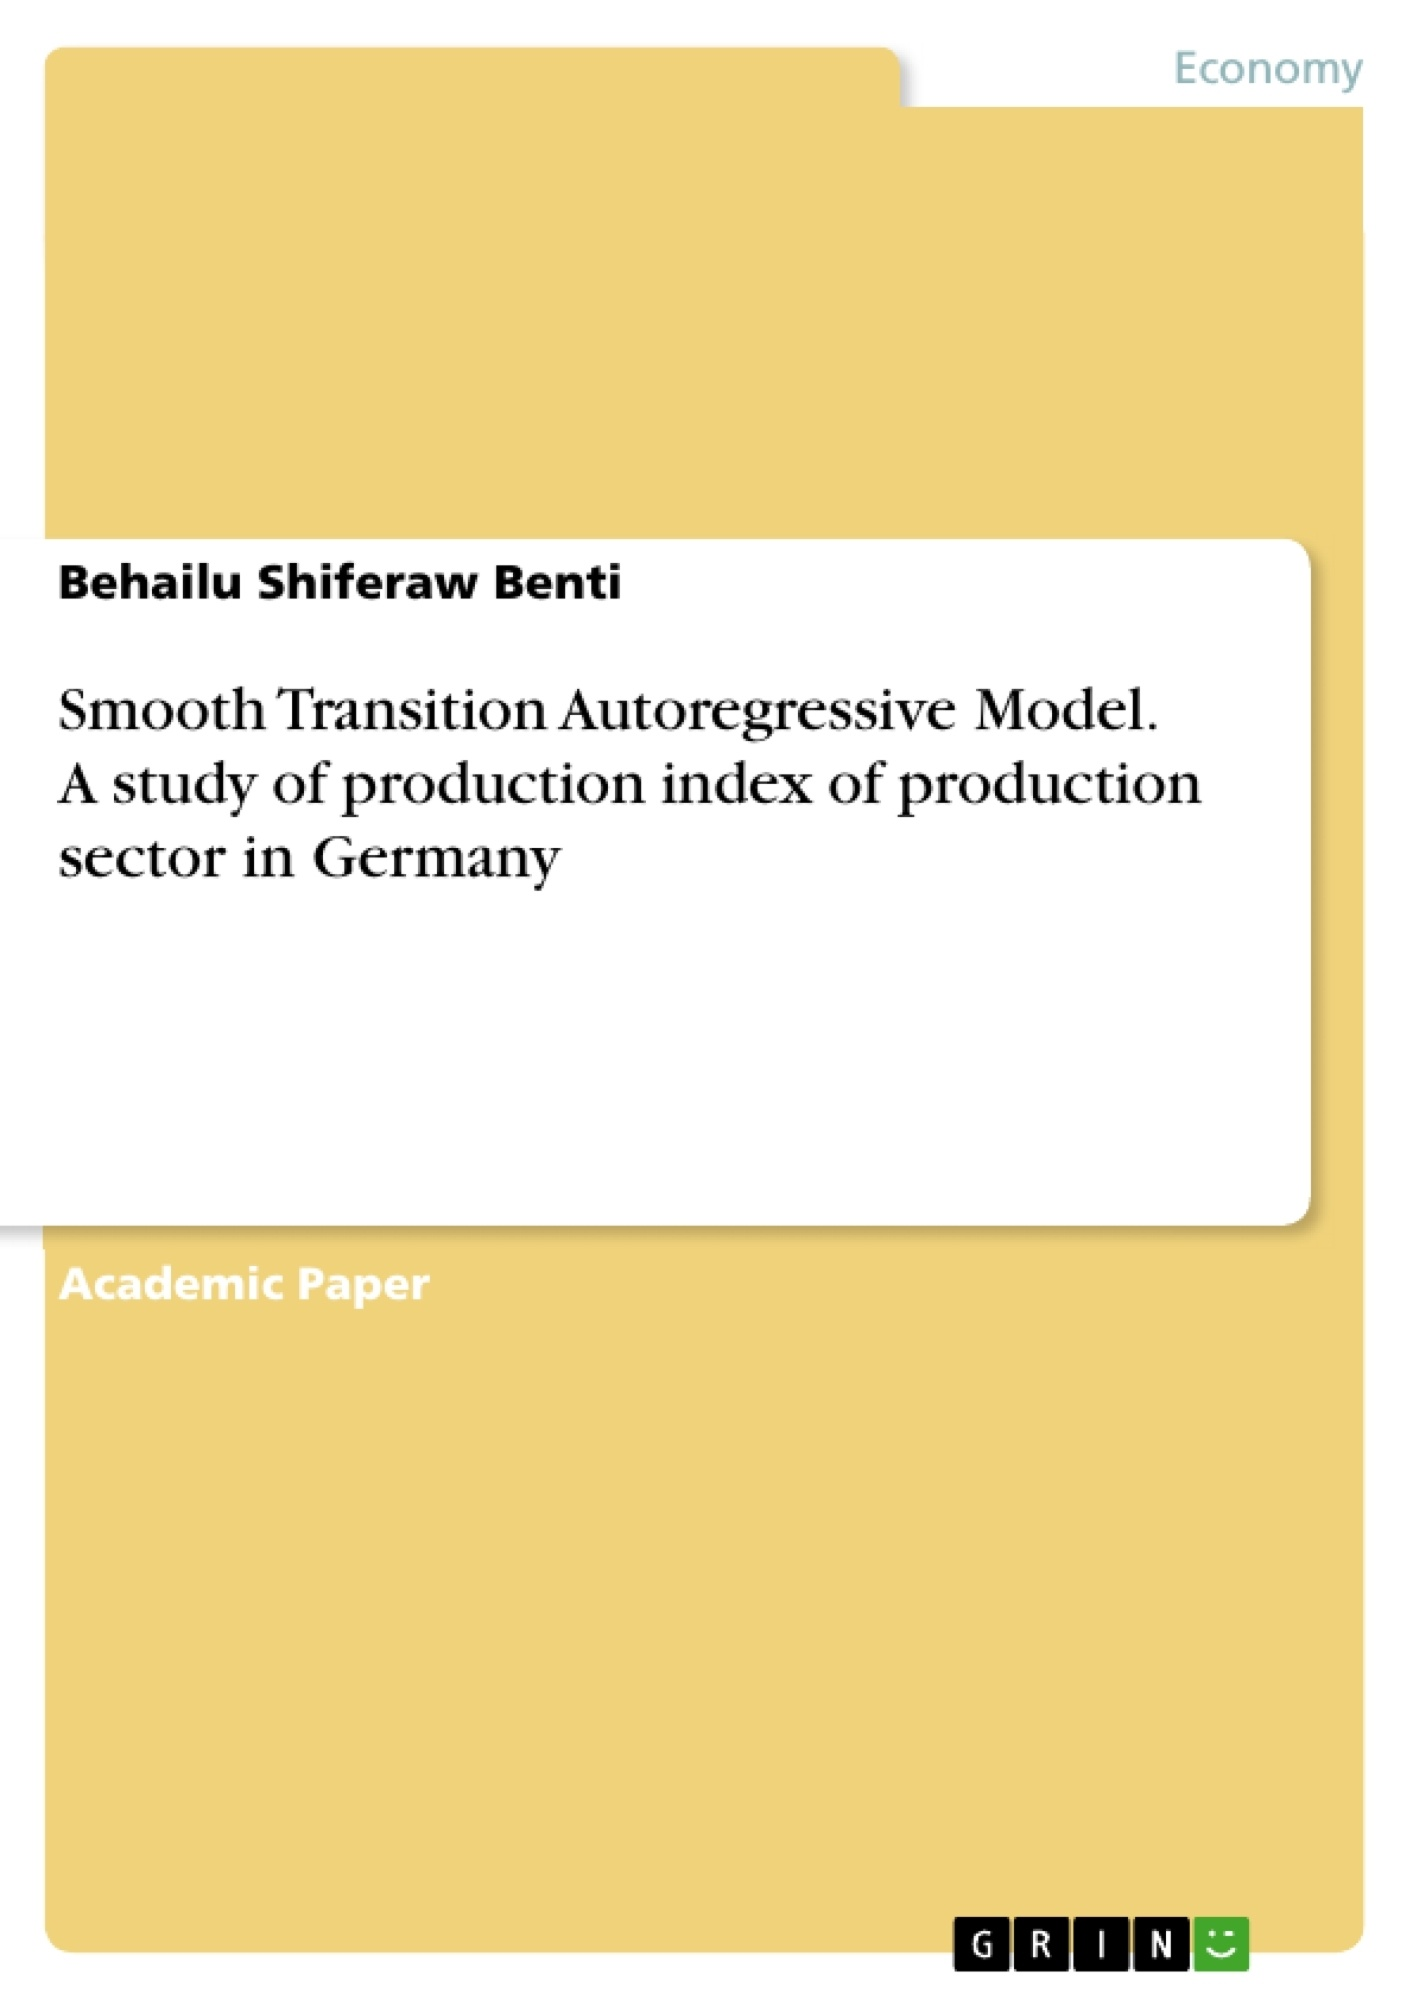 Title: Smooth Transition Autoregressive Model. A study of production index of production sector in Germany